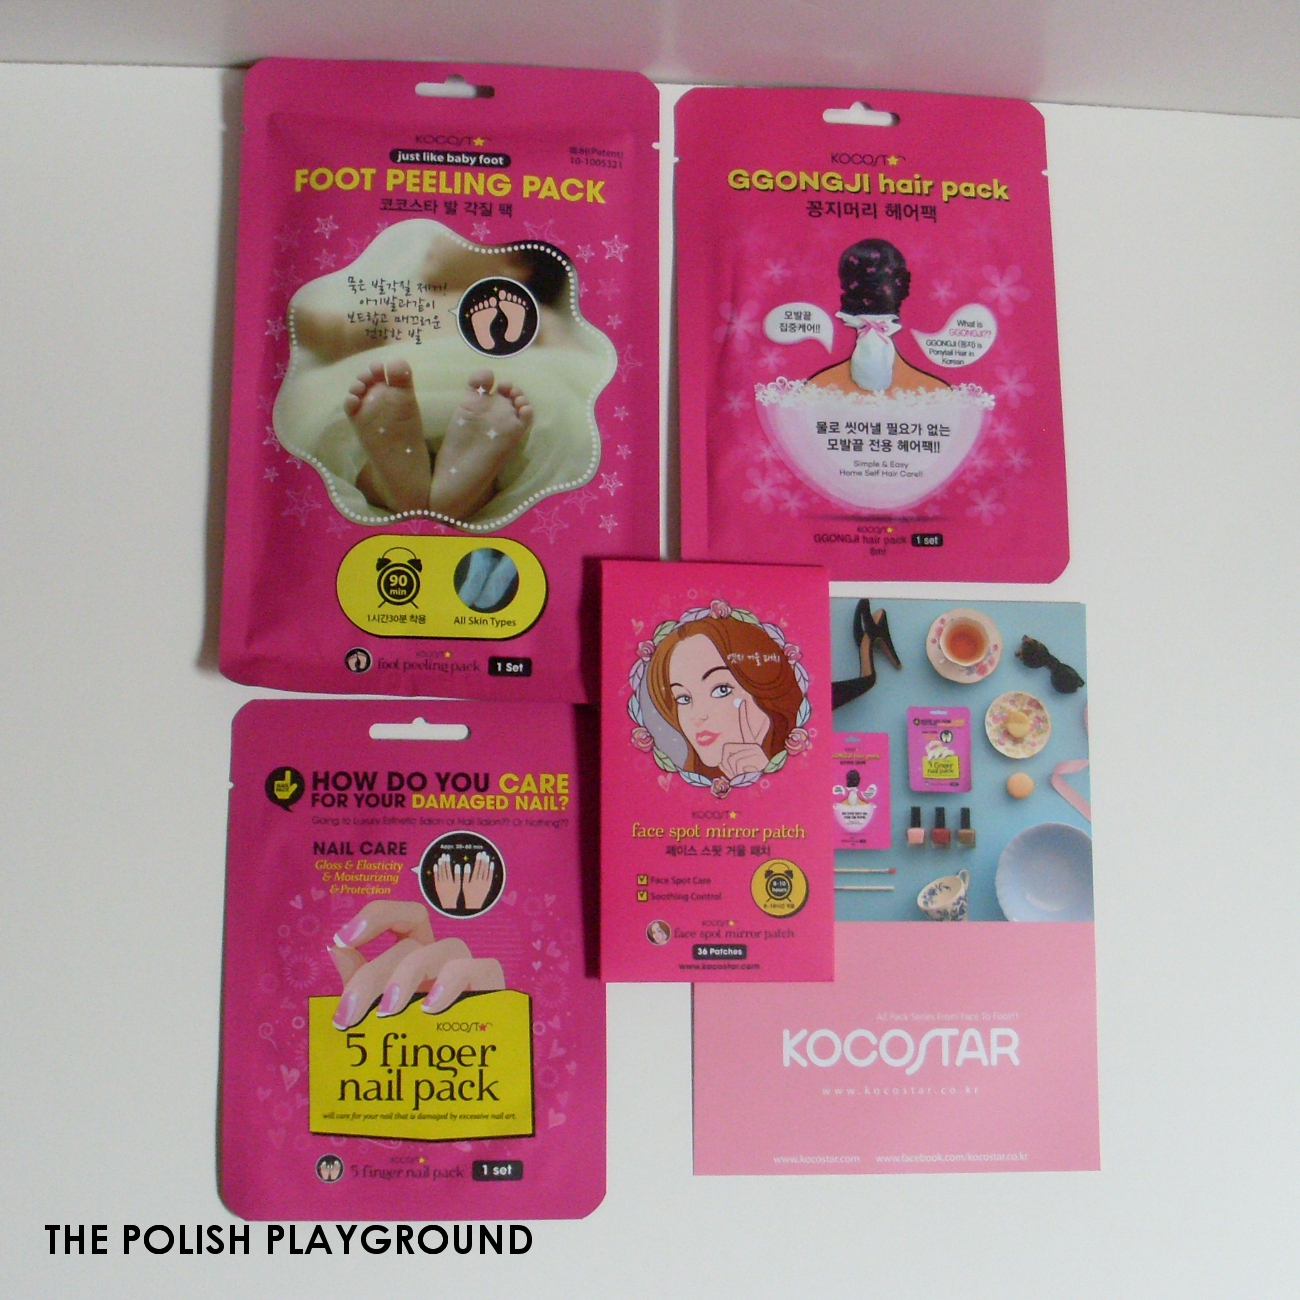 Memebox Global #14 Unboxing - Kocostar 4 Package Set [Ggongji Hair Pack, Face Spot Mirror Patch, 5 Finger Nail Pack, Foot Peeling Pack]